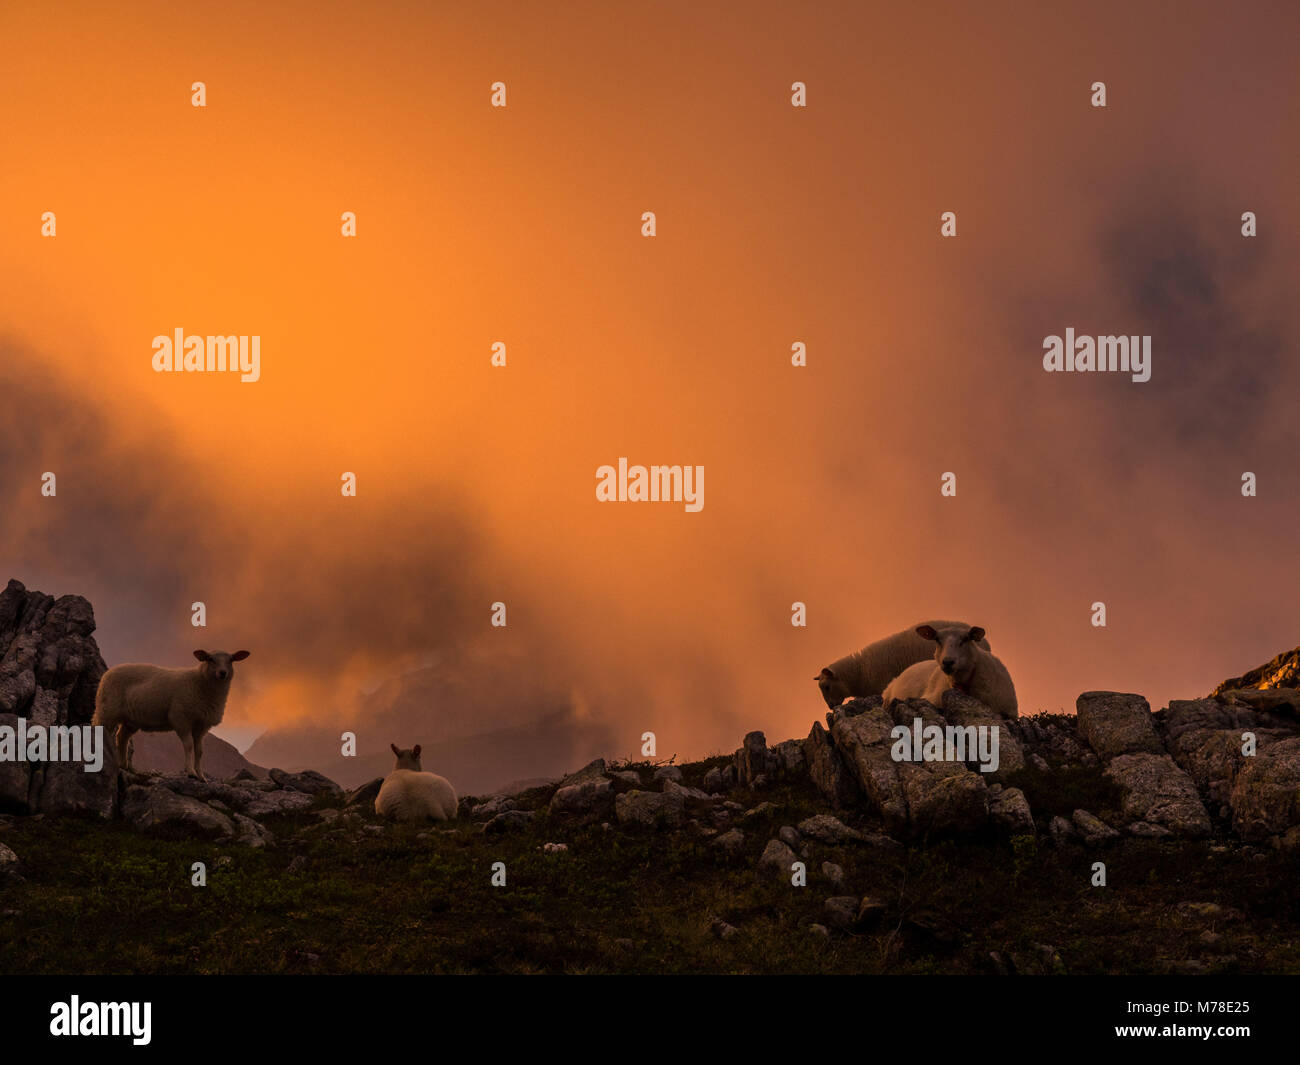 Sheeps on a hill during sunset with fog. - Stock Image